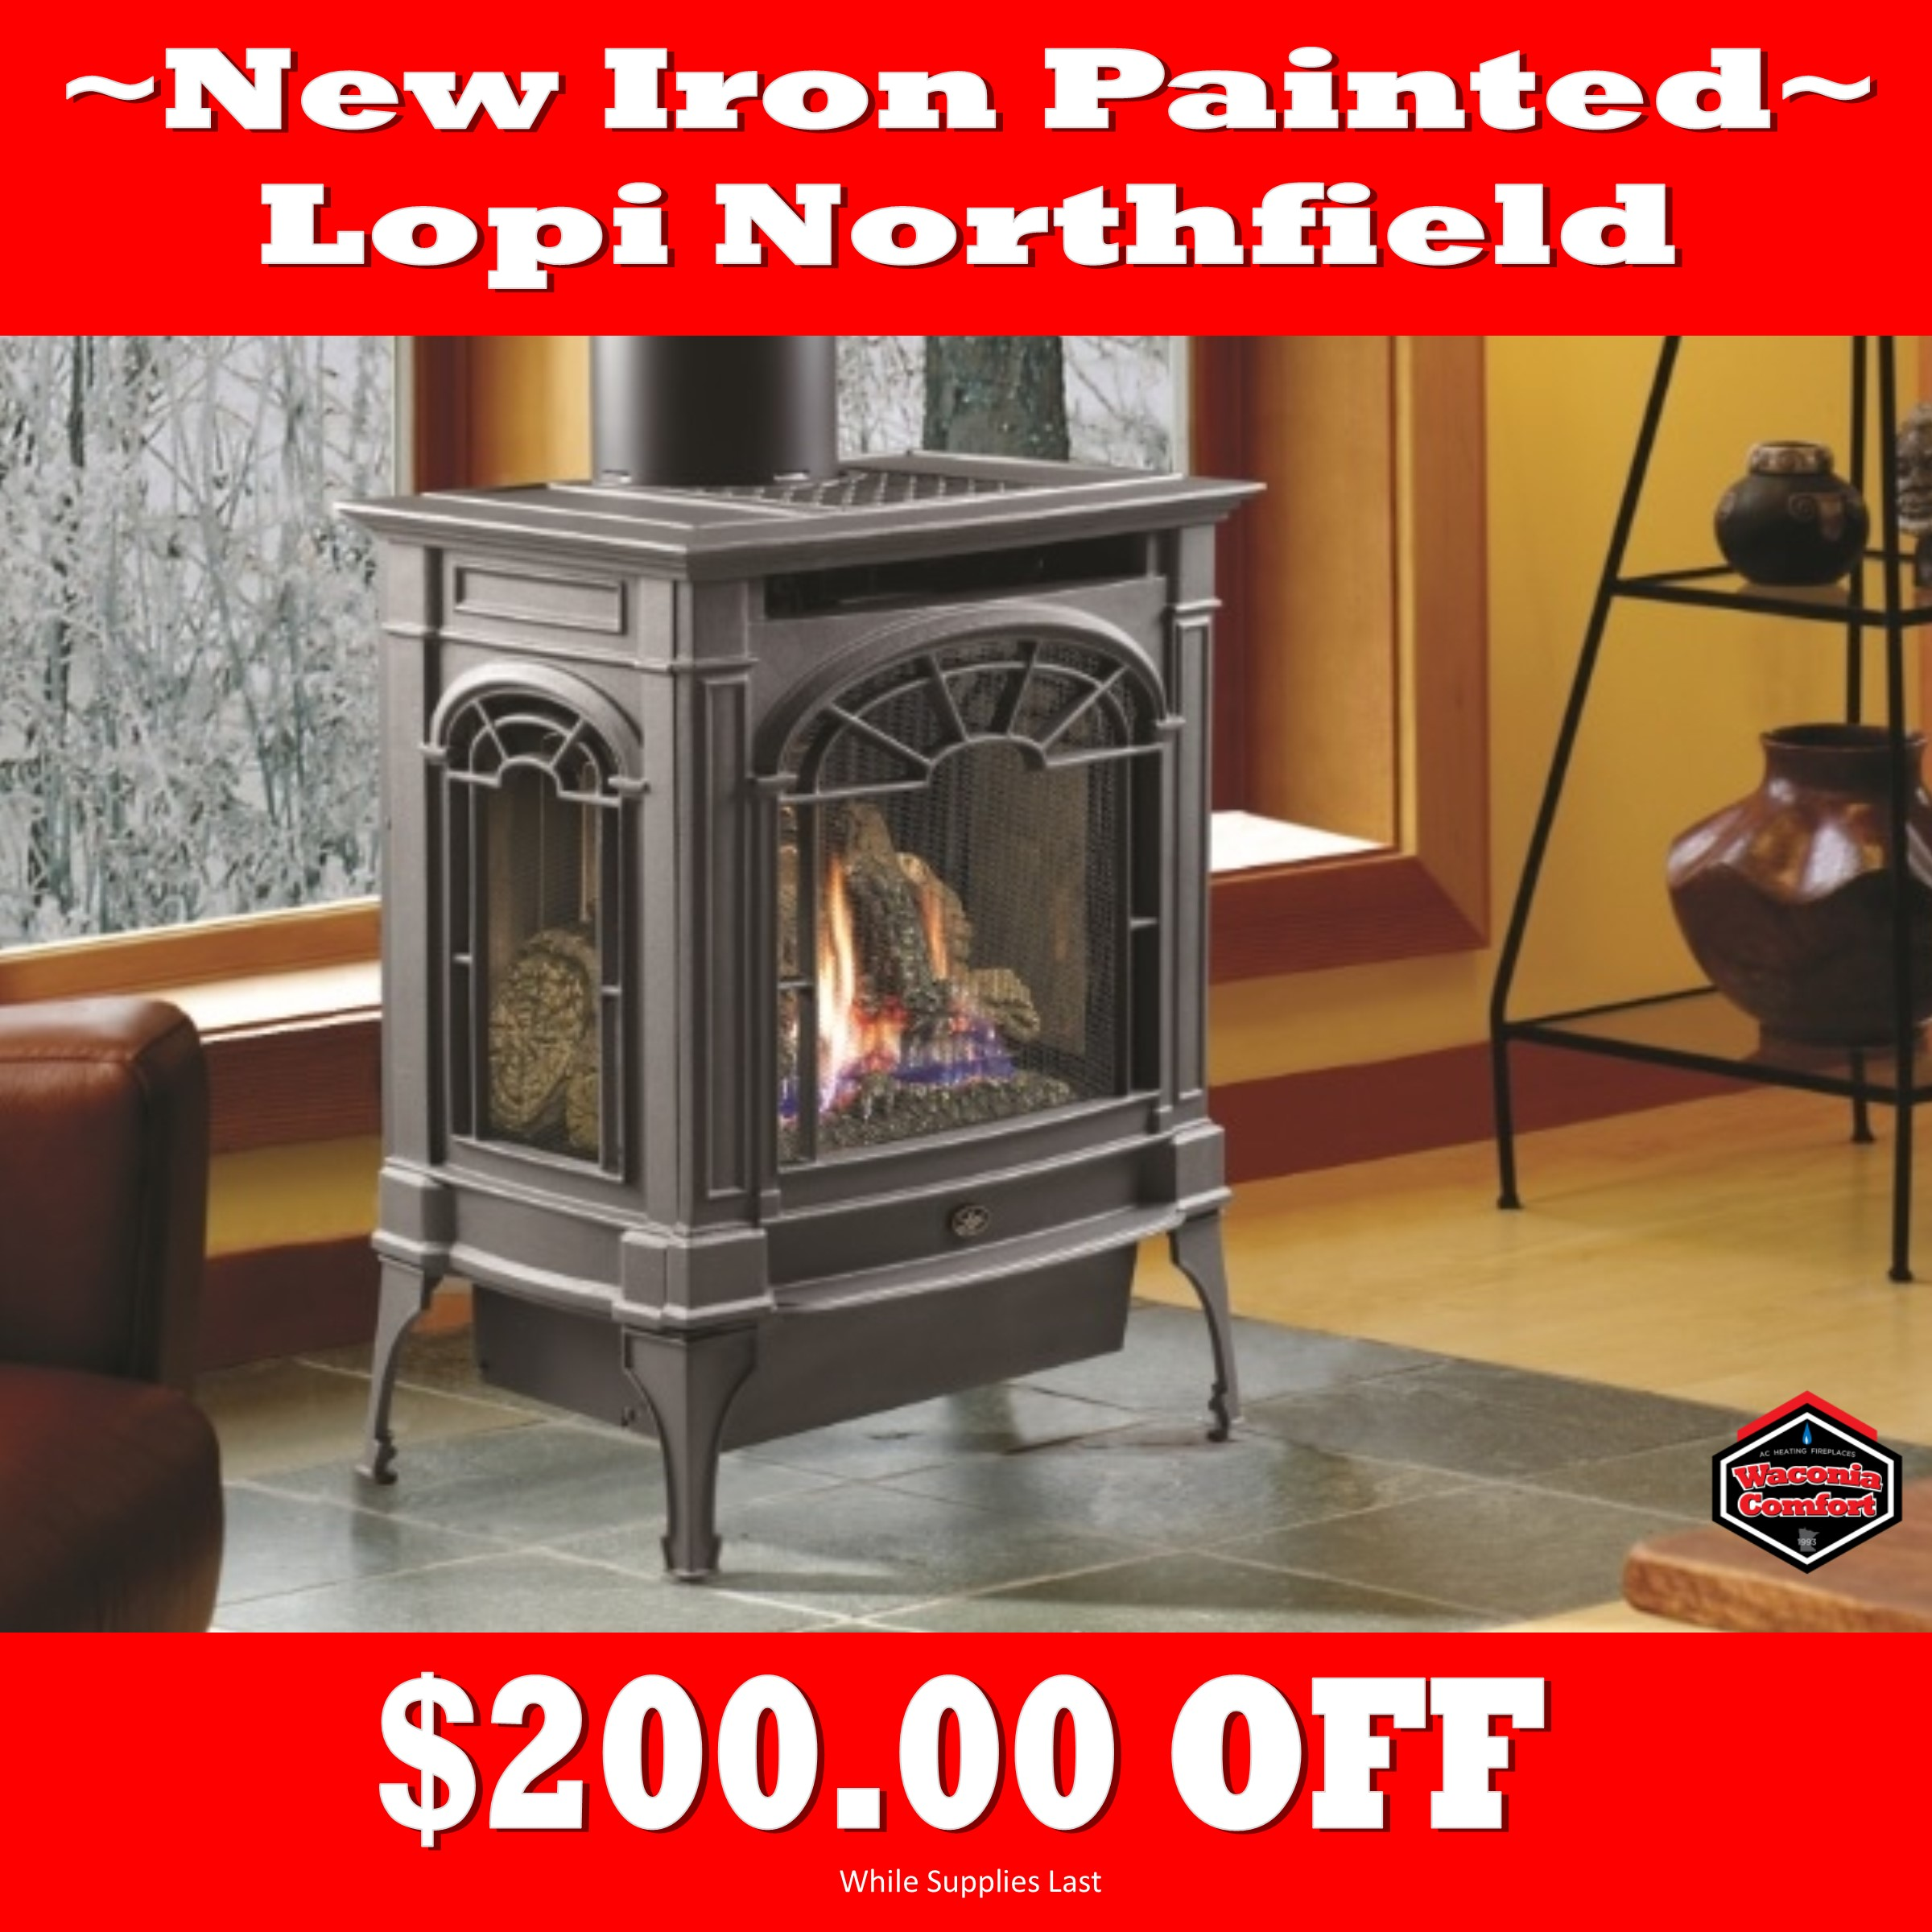 Lopi Northfield New Iron Painted Waconia Comfort